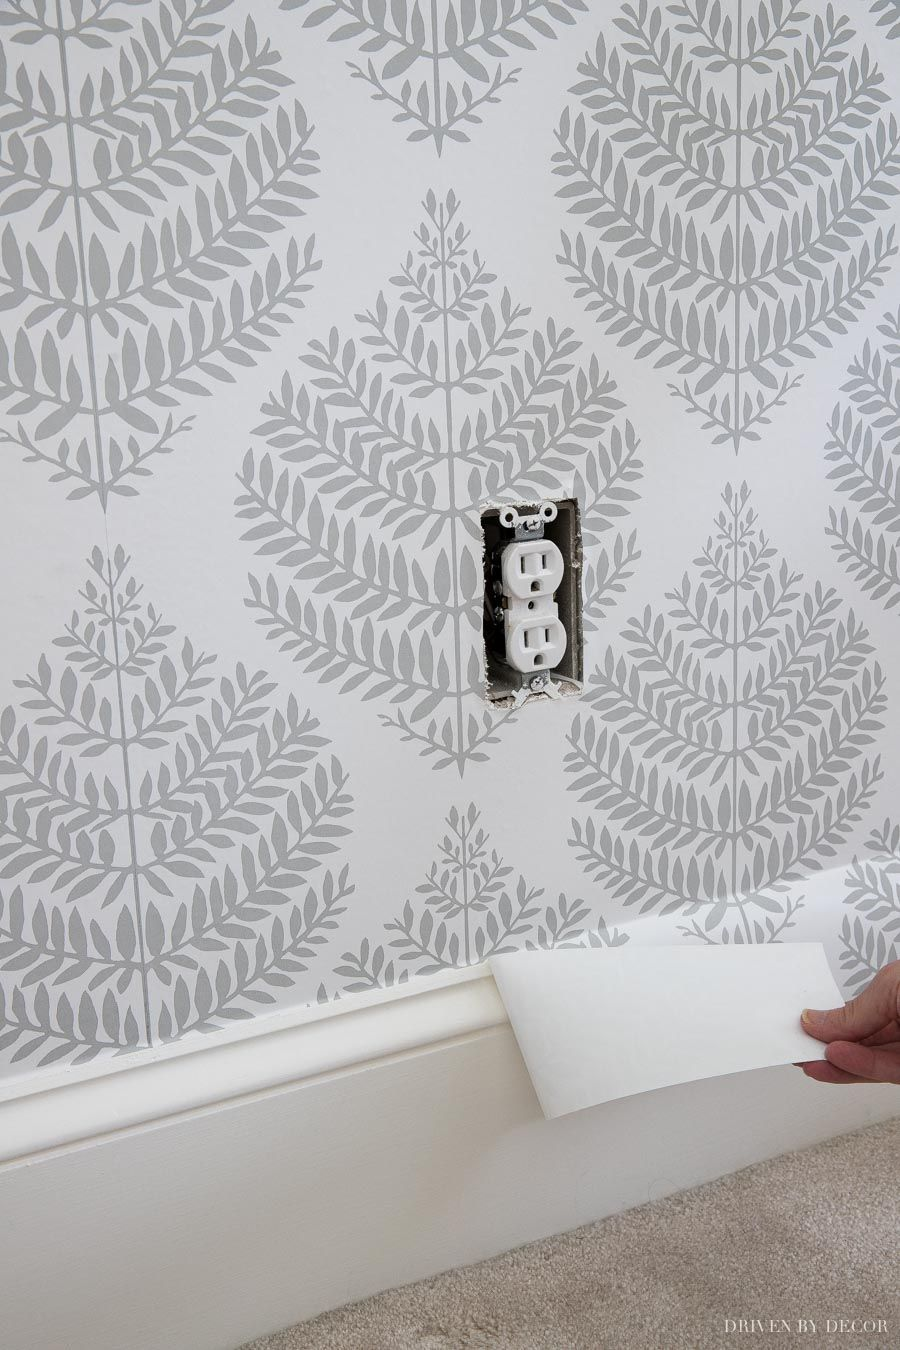 Peel Stick Wallpaper How My First Project With It Turned Out Your Questions Answered Driven By Decor Driven By Decor Peel And Stick Wallpaper Vinyl Wall Decals